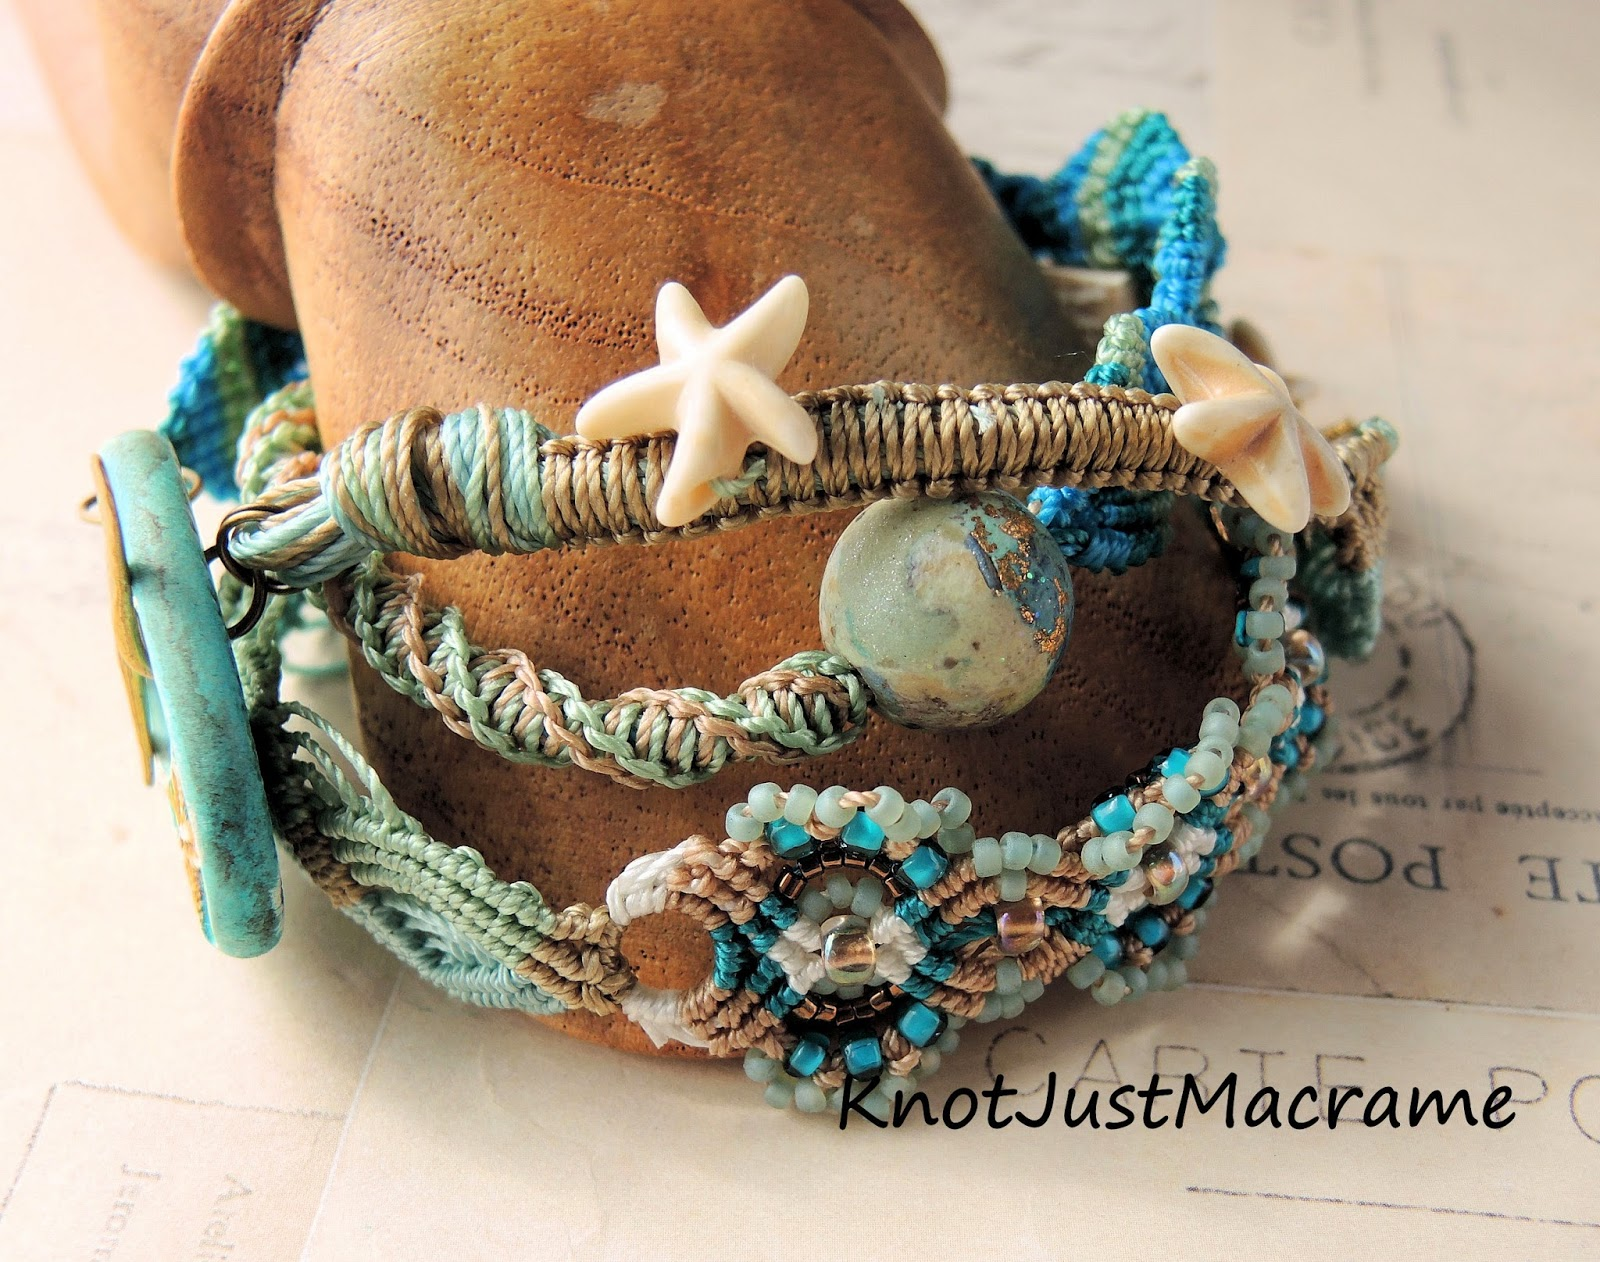 Starfish beach themed micro macrame wrap bracelet by Knot Just Macrame.